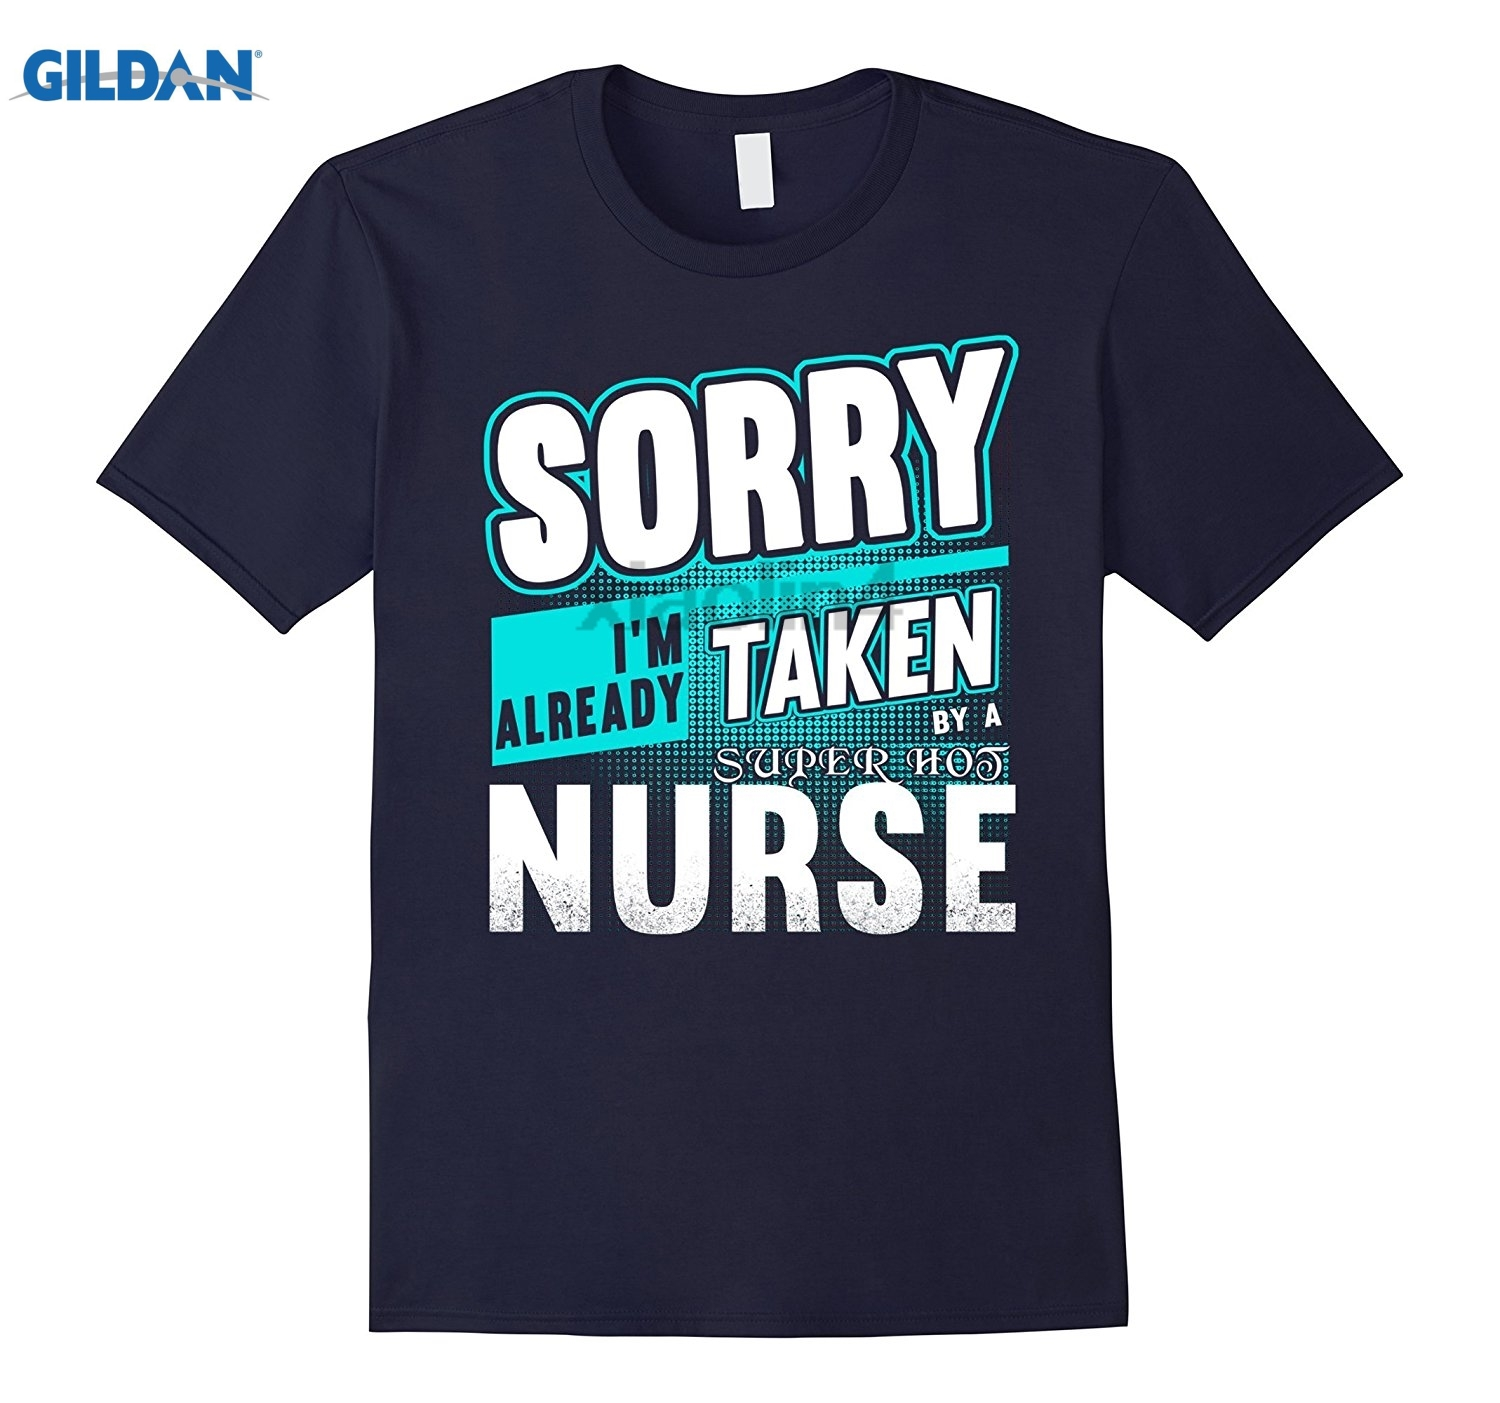 GILDAN Sorry Im Already Taken By A Super Hot NURSE Funny T-shirt dress T-shirt